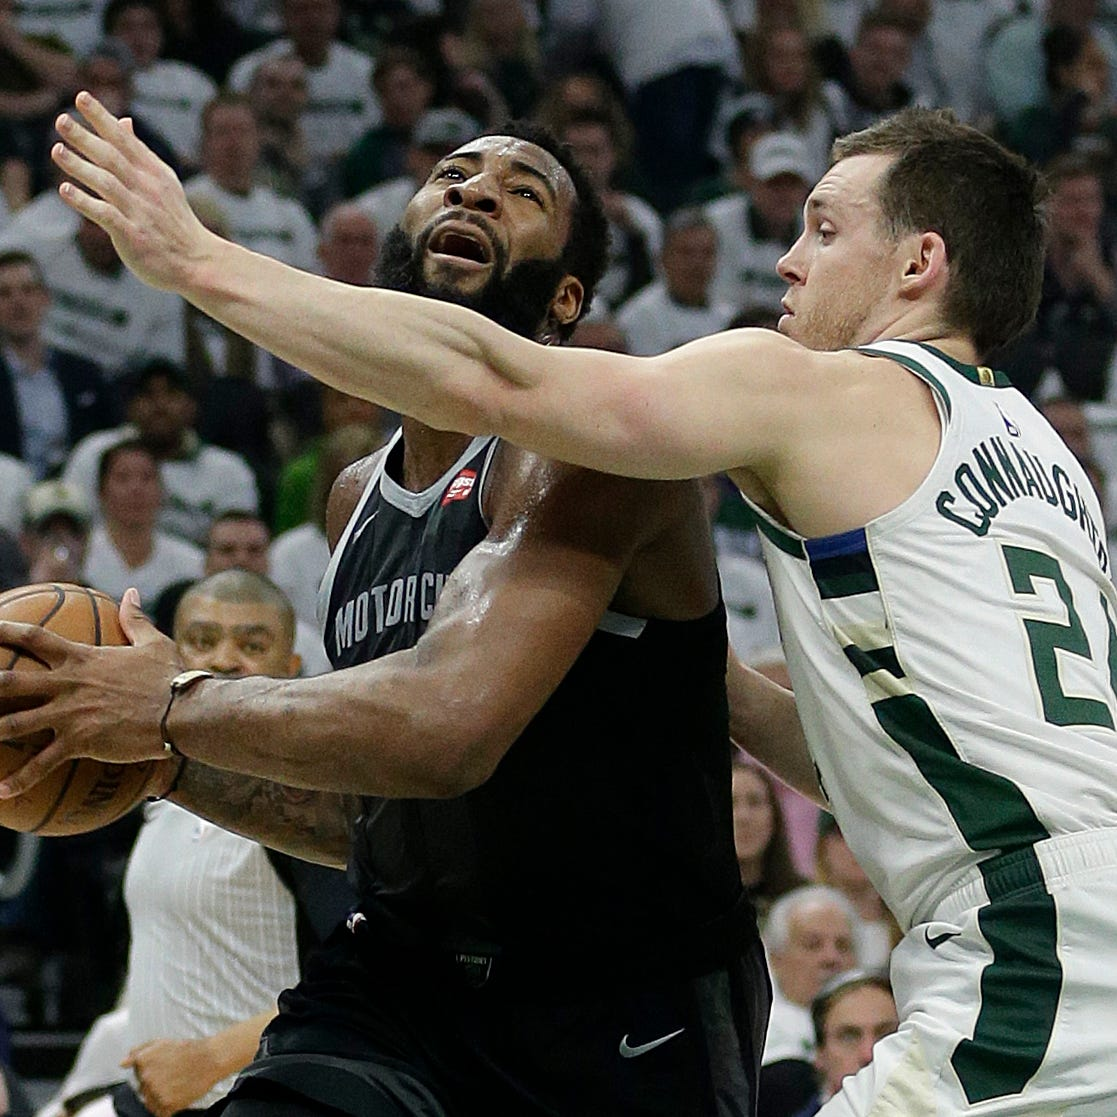 Game 1 recap: Drummond tossed, Pistons drilled 121-86 by Bucks